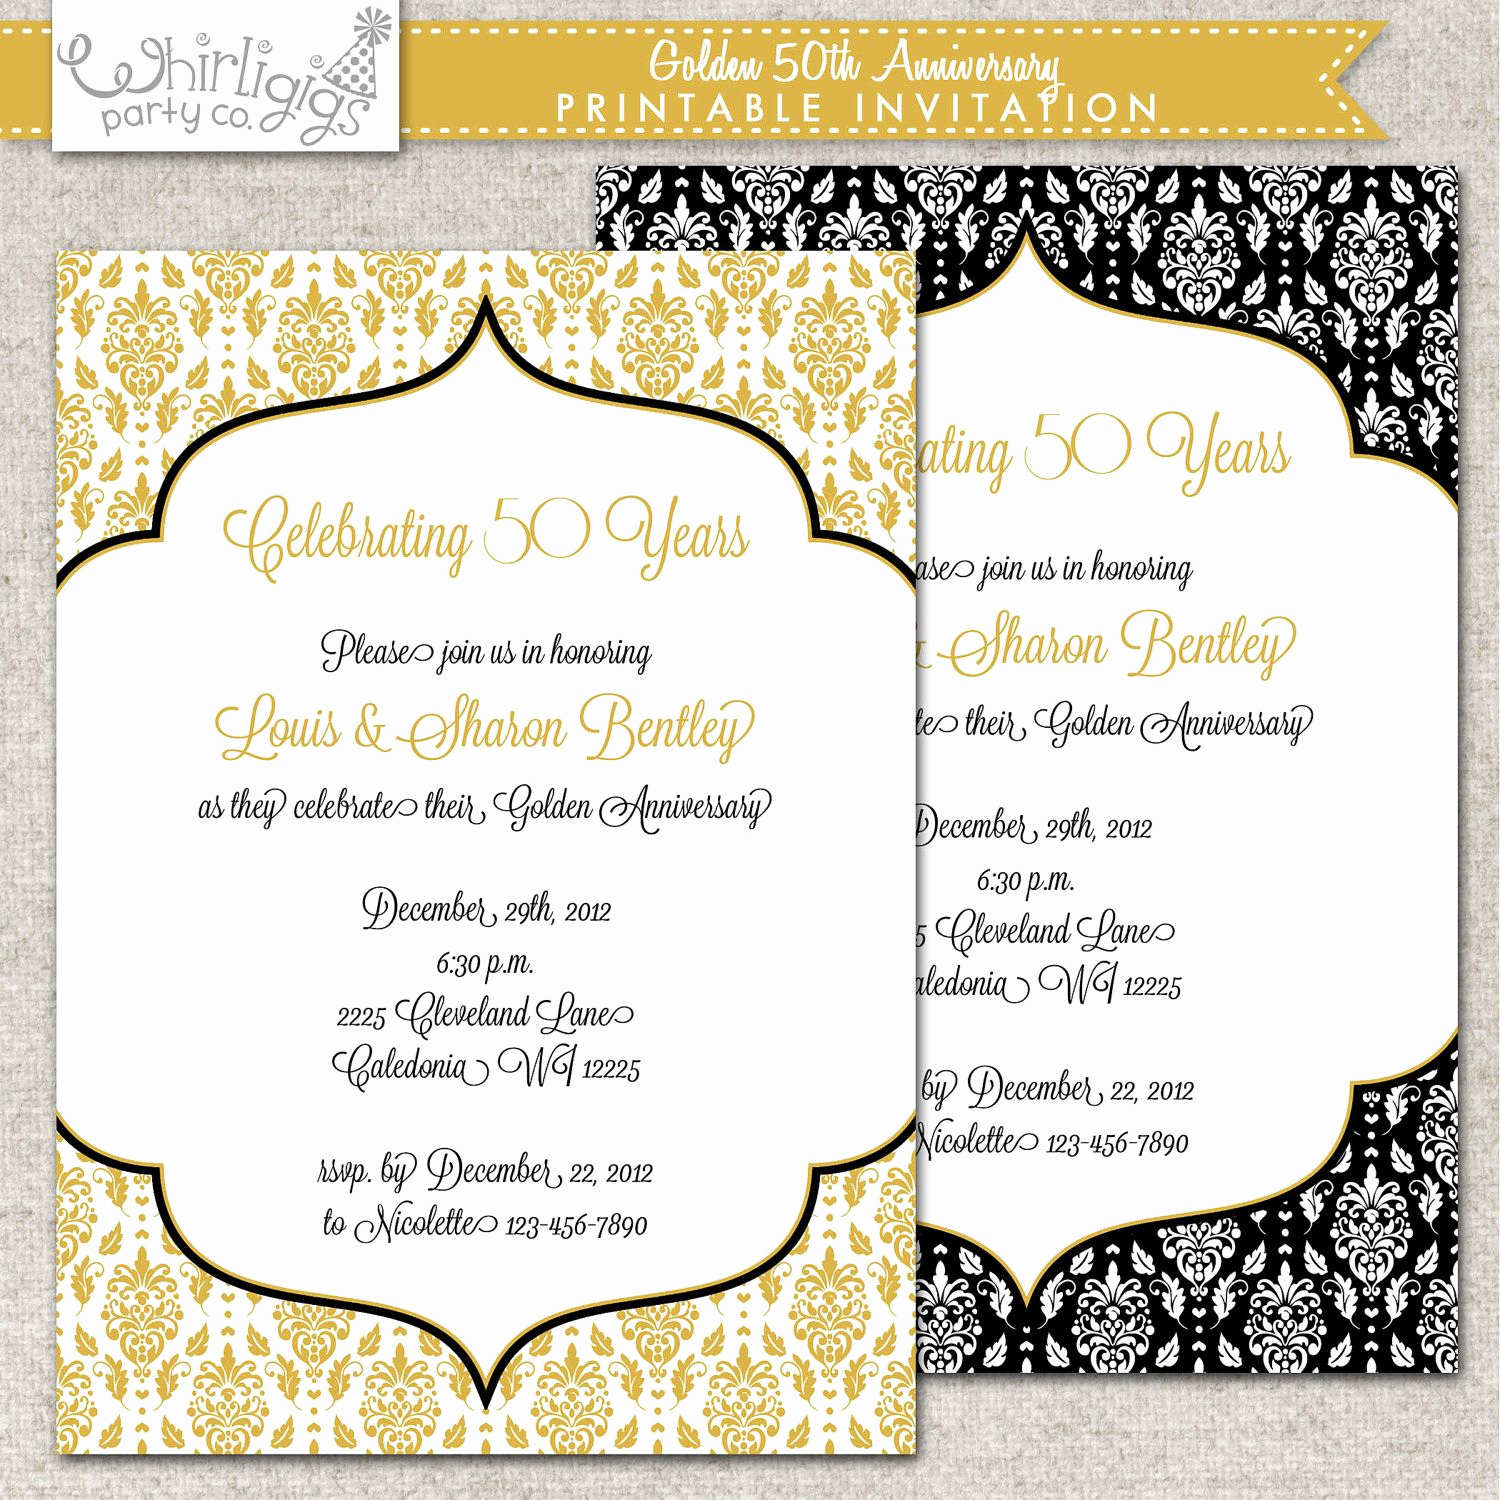 Anniversary Party Invitation Wording Fresh 50th Anniversary Invitation Golden Anniversary Invitation